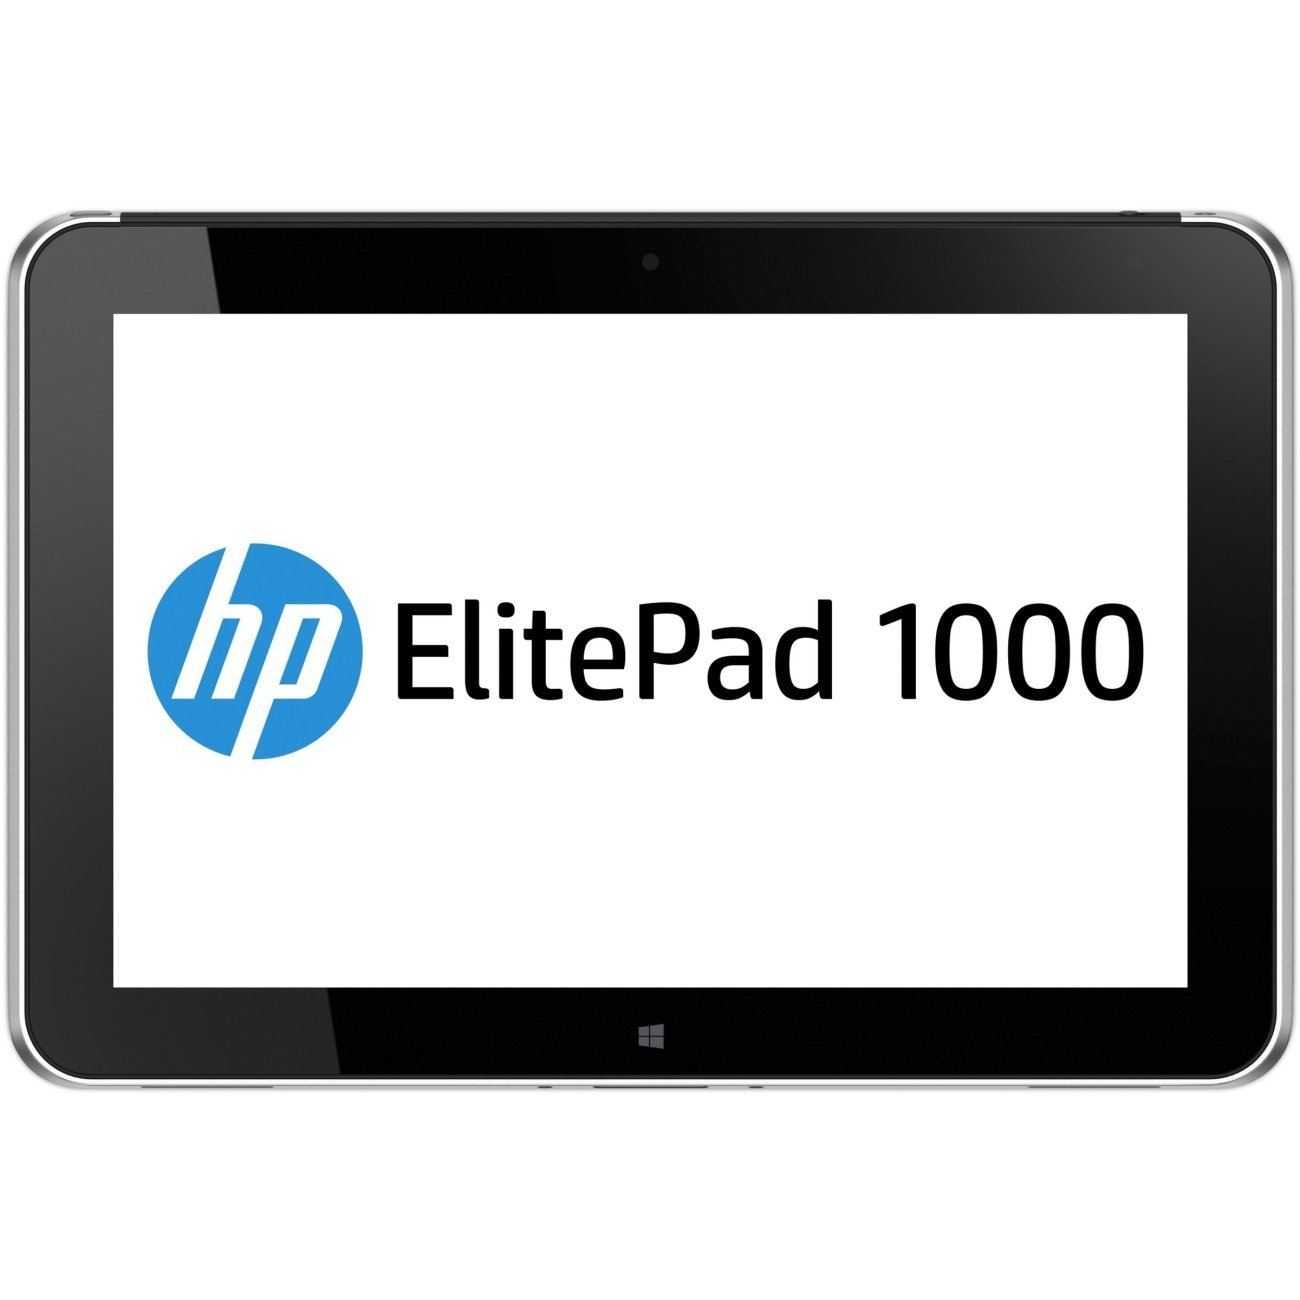 "HP ElitePad 1000 G2 Net-tablet PC - 10.1"" - Intel Atom Z3795 1.59 GHz - Black J6T88AA#ABA"